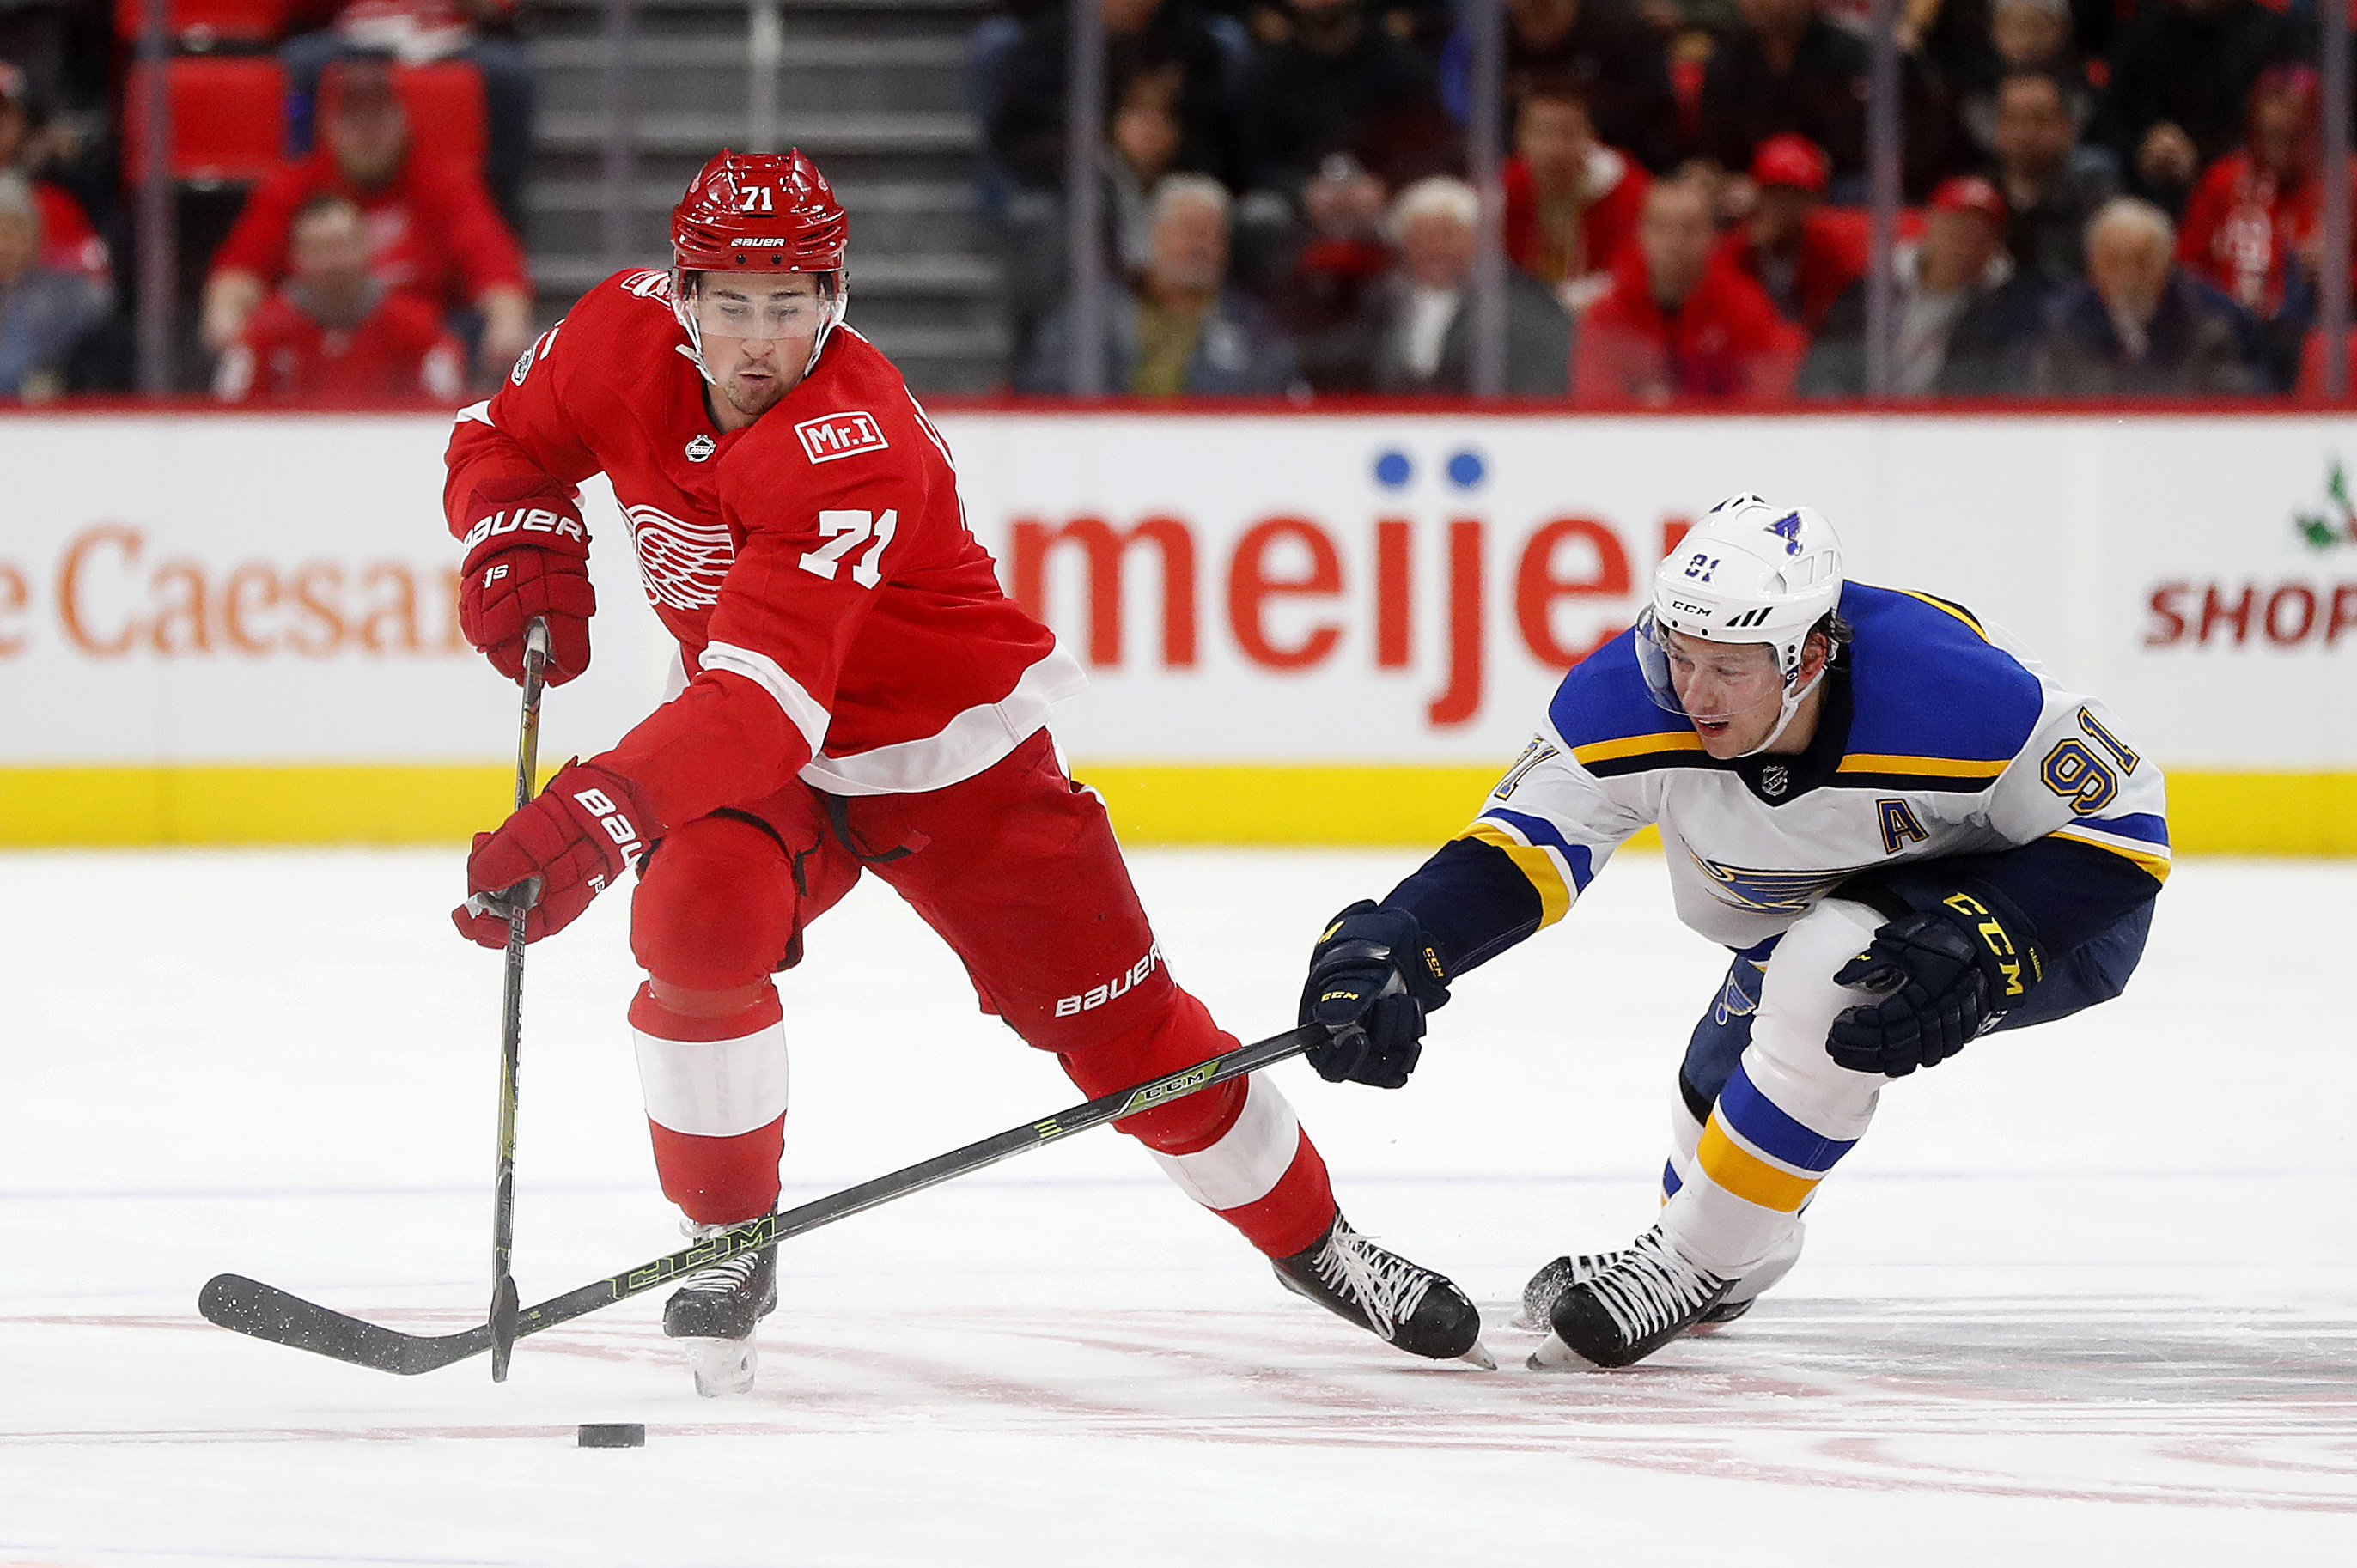 Red Wings continue to struggle with 6-1 loss to Blues ...